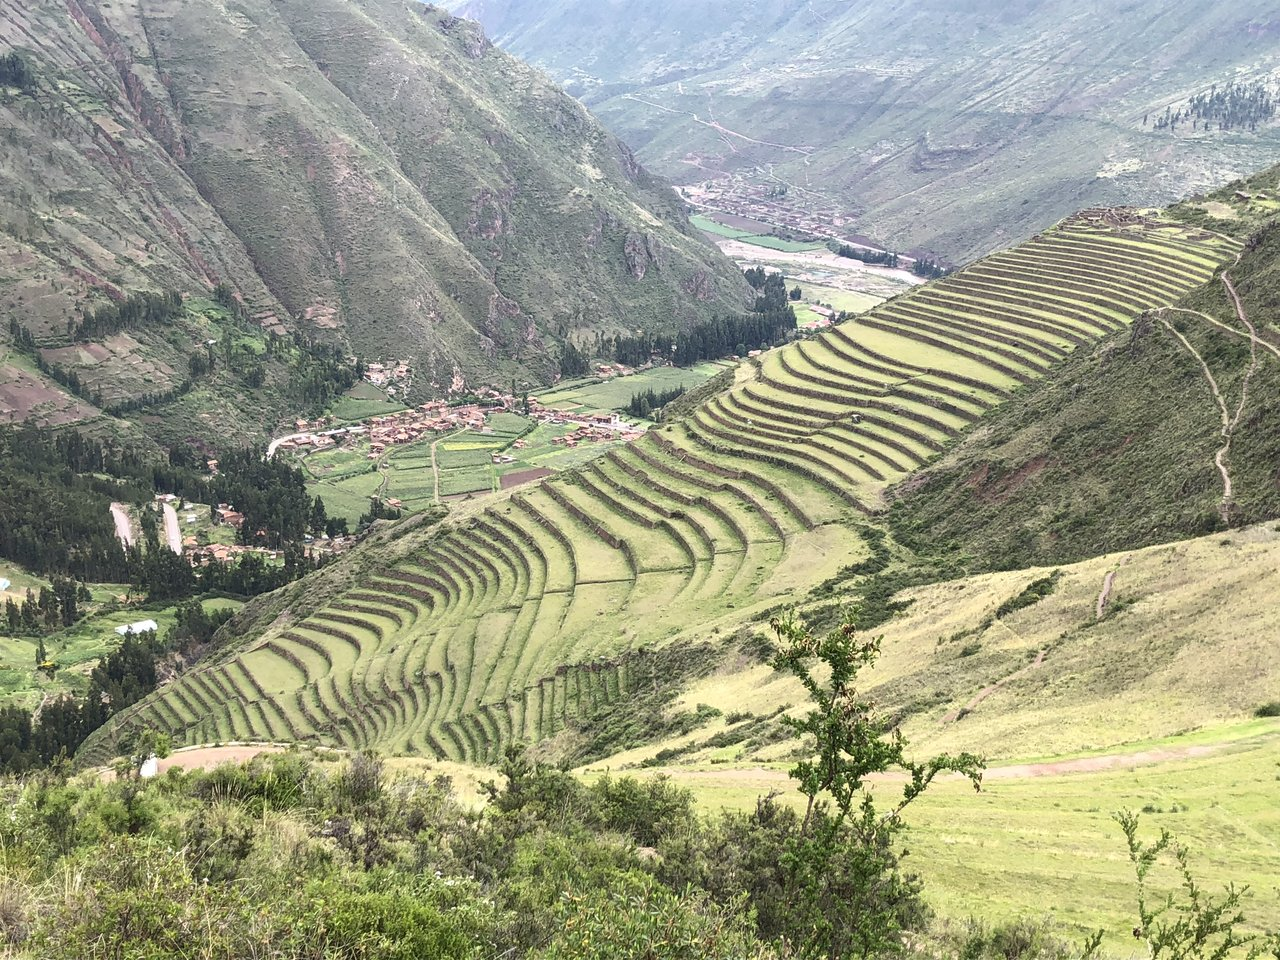 Pisac terraces - the condor and the burial grounds | Photo taken by Susan D